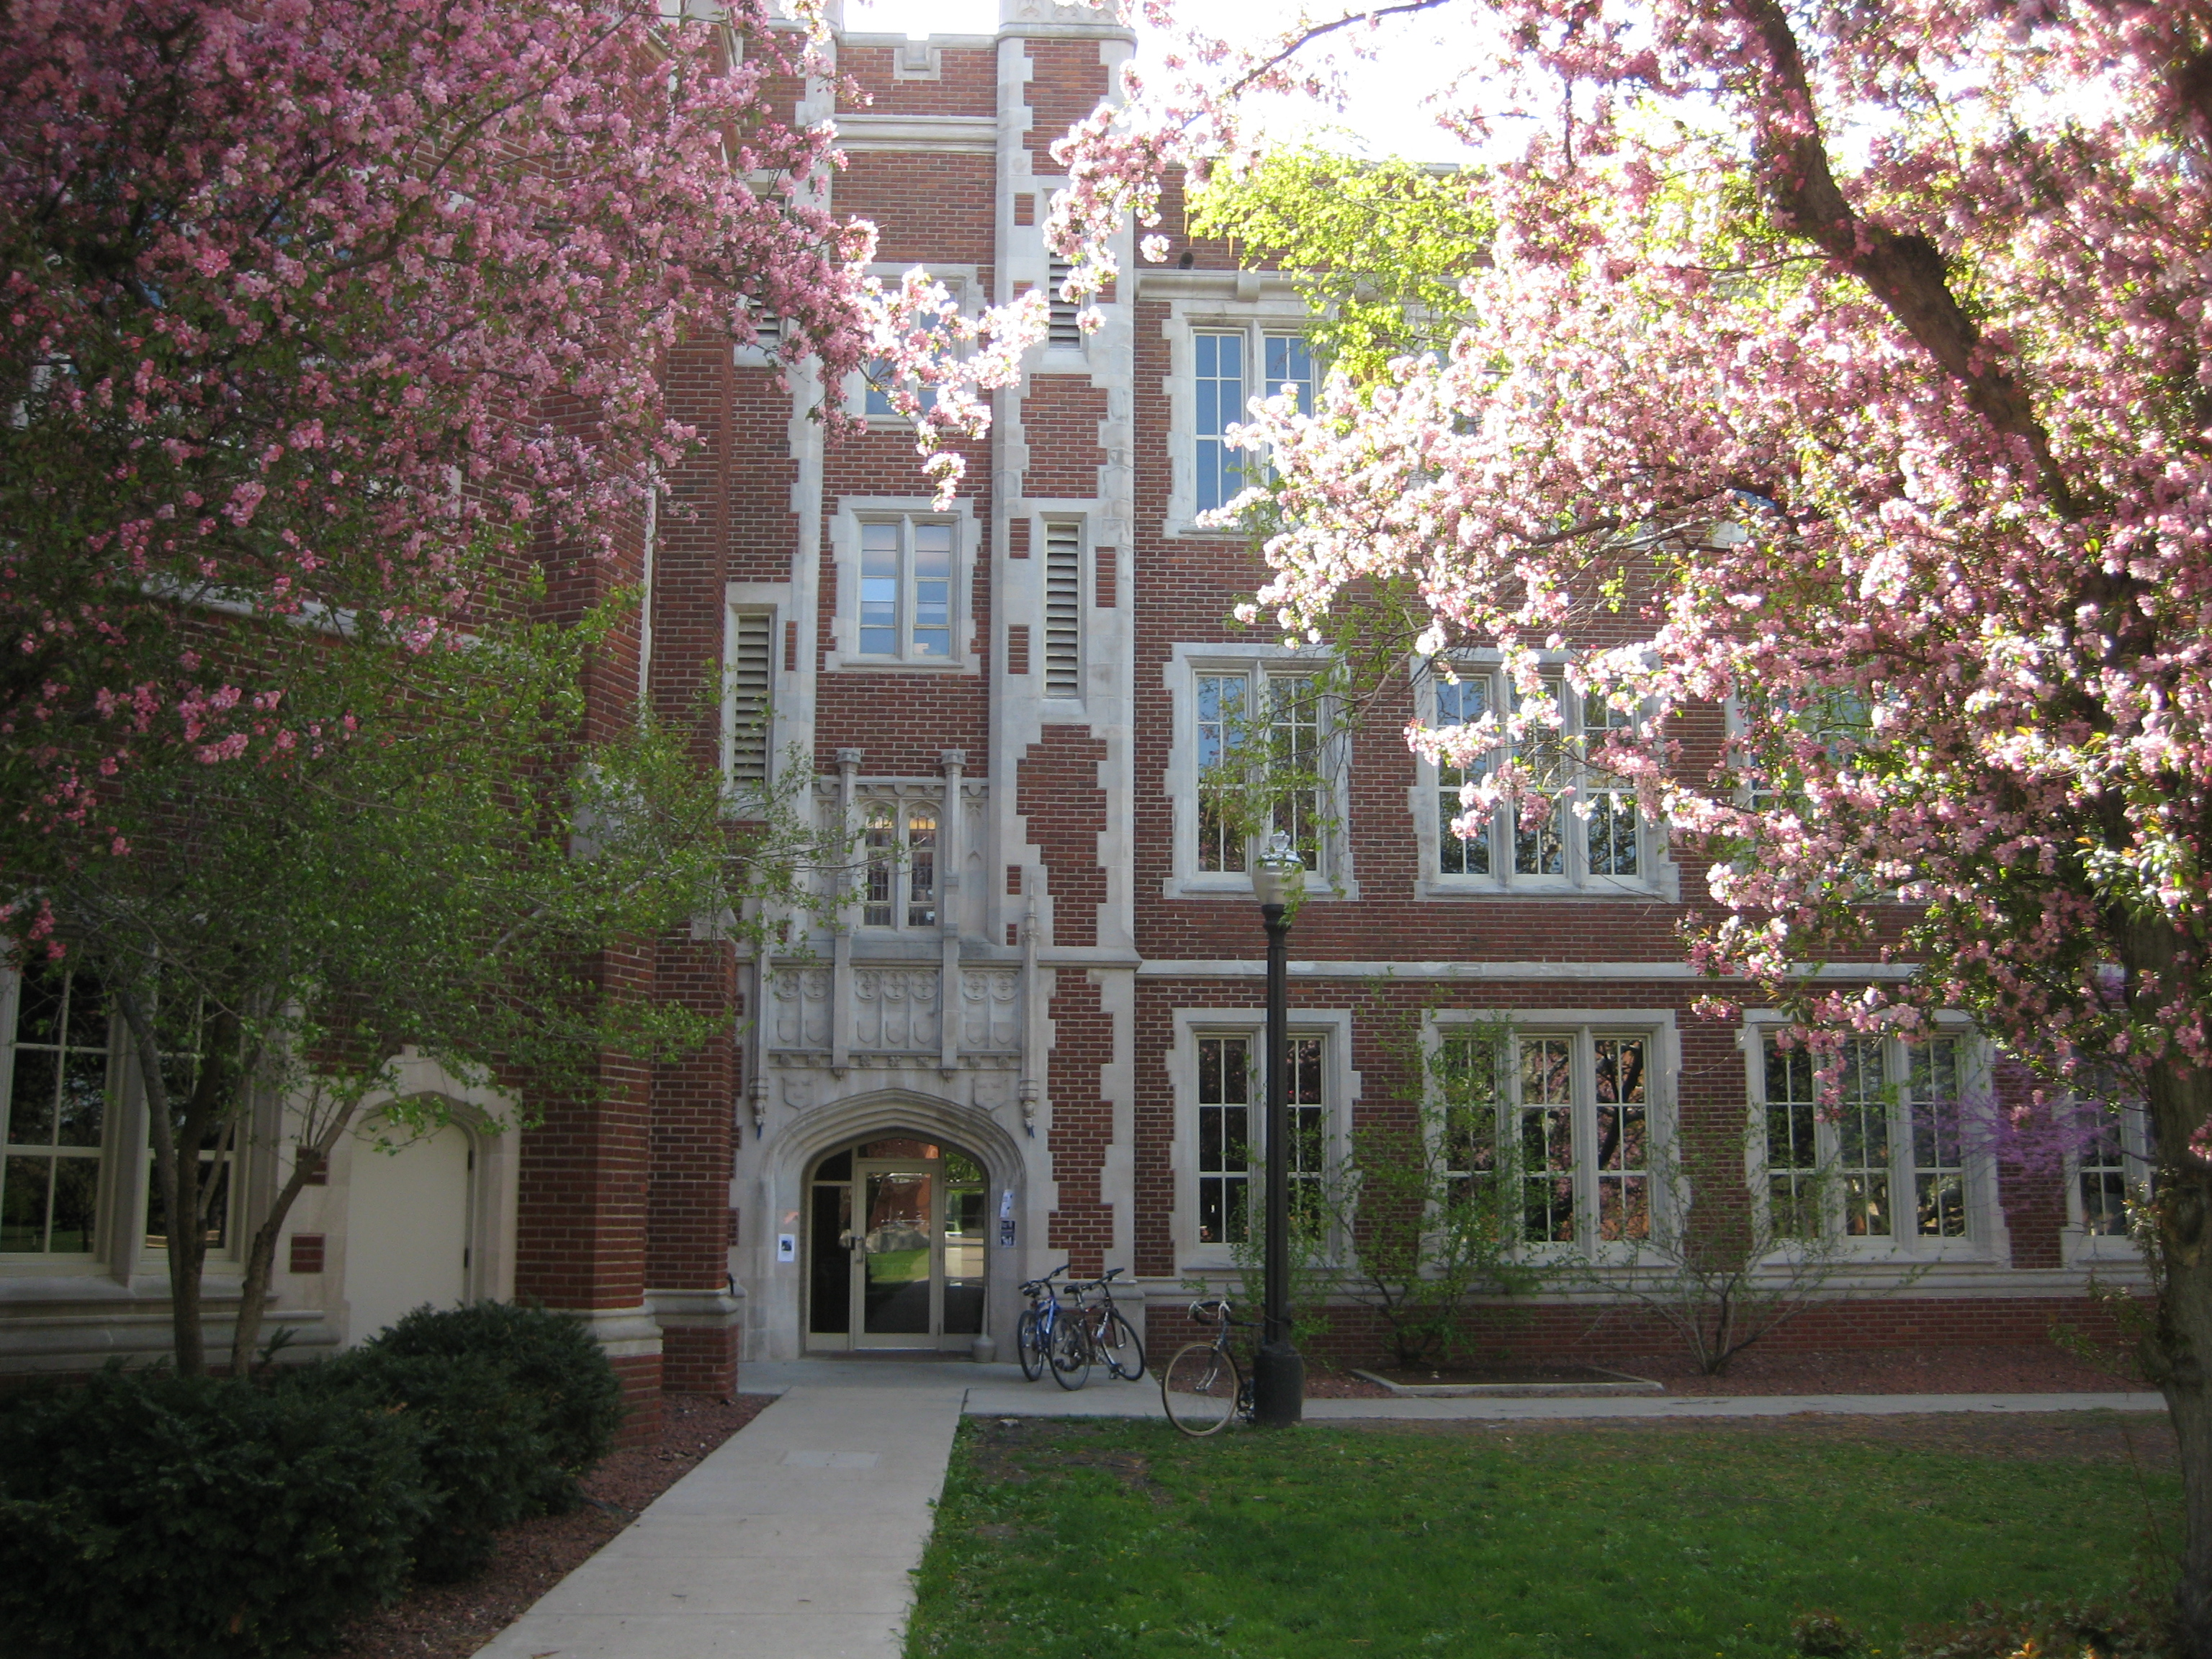 http://upload.wikimedia.org/wikipedia/commons/a/a8/Grinnell_College_ARH_Spring.JPG